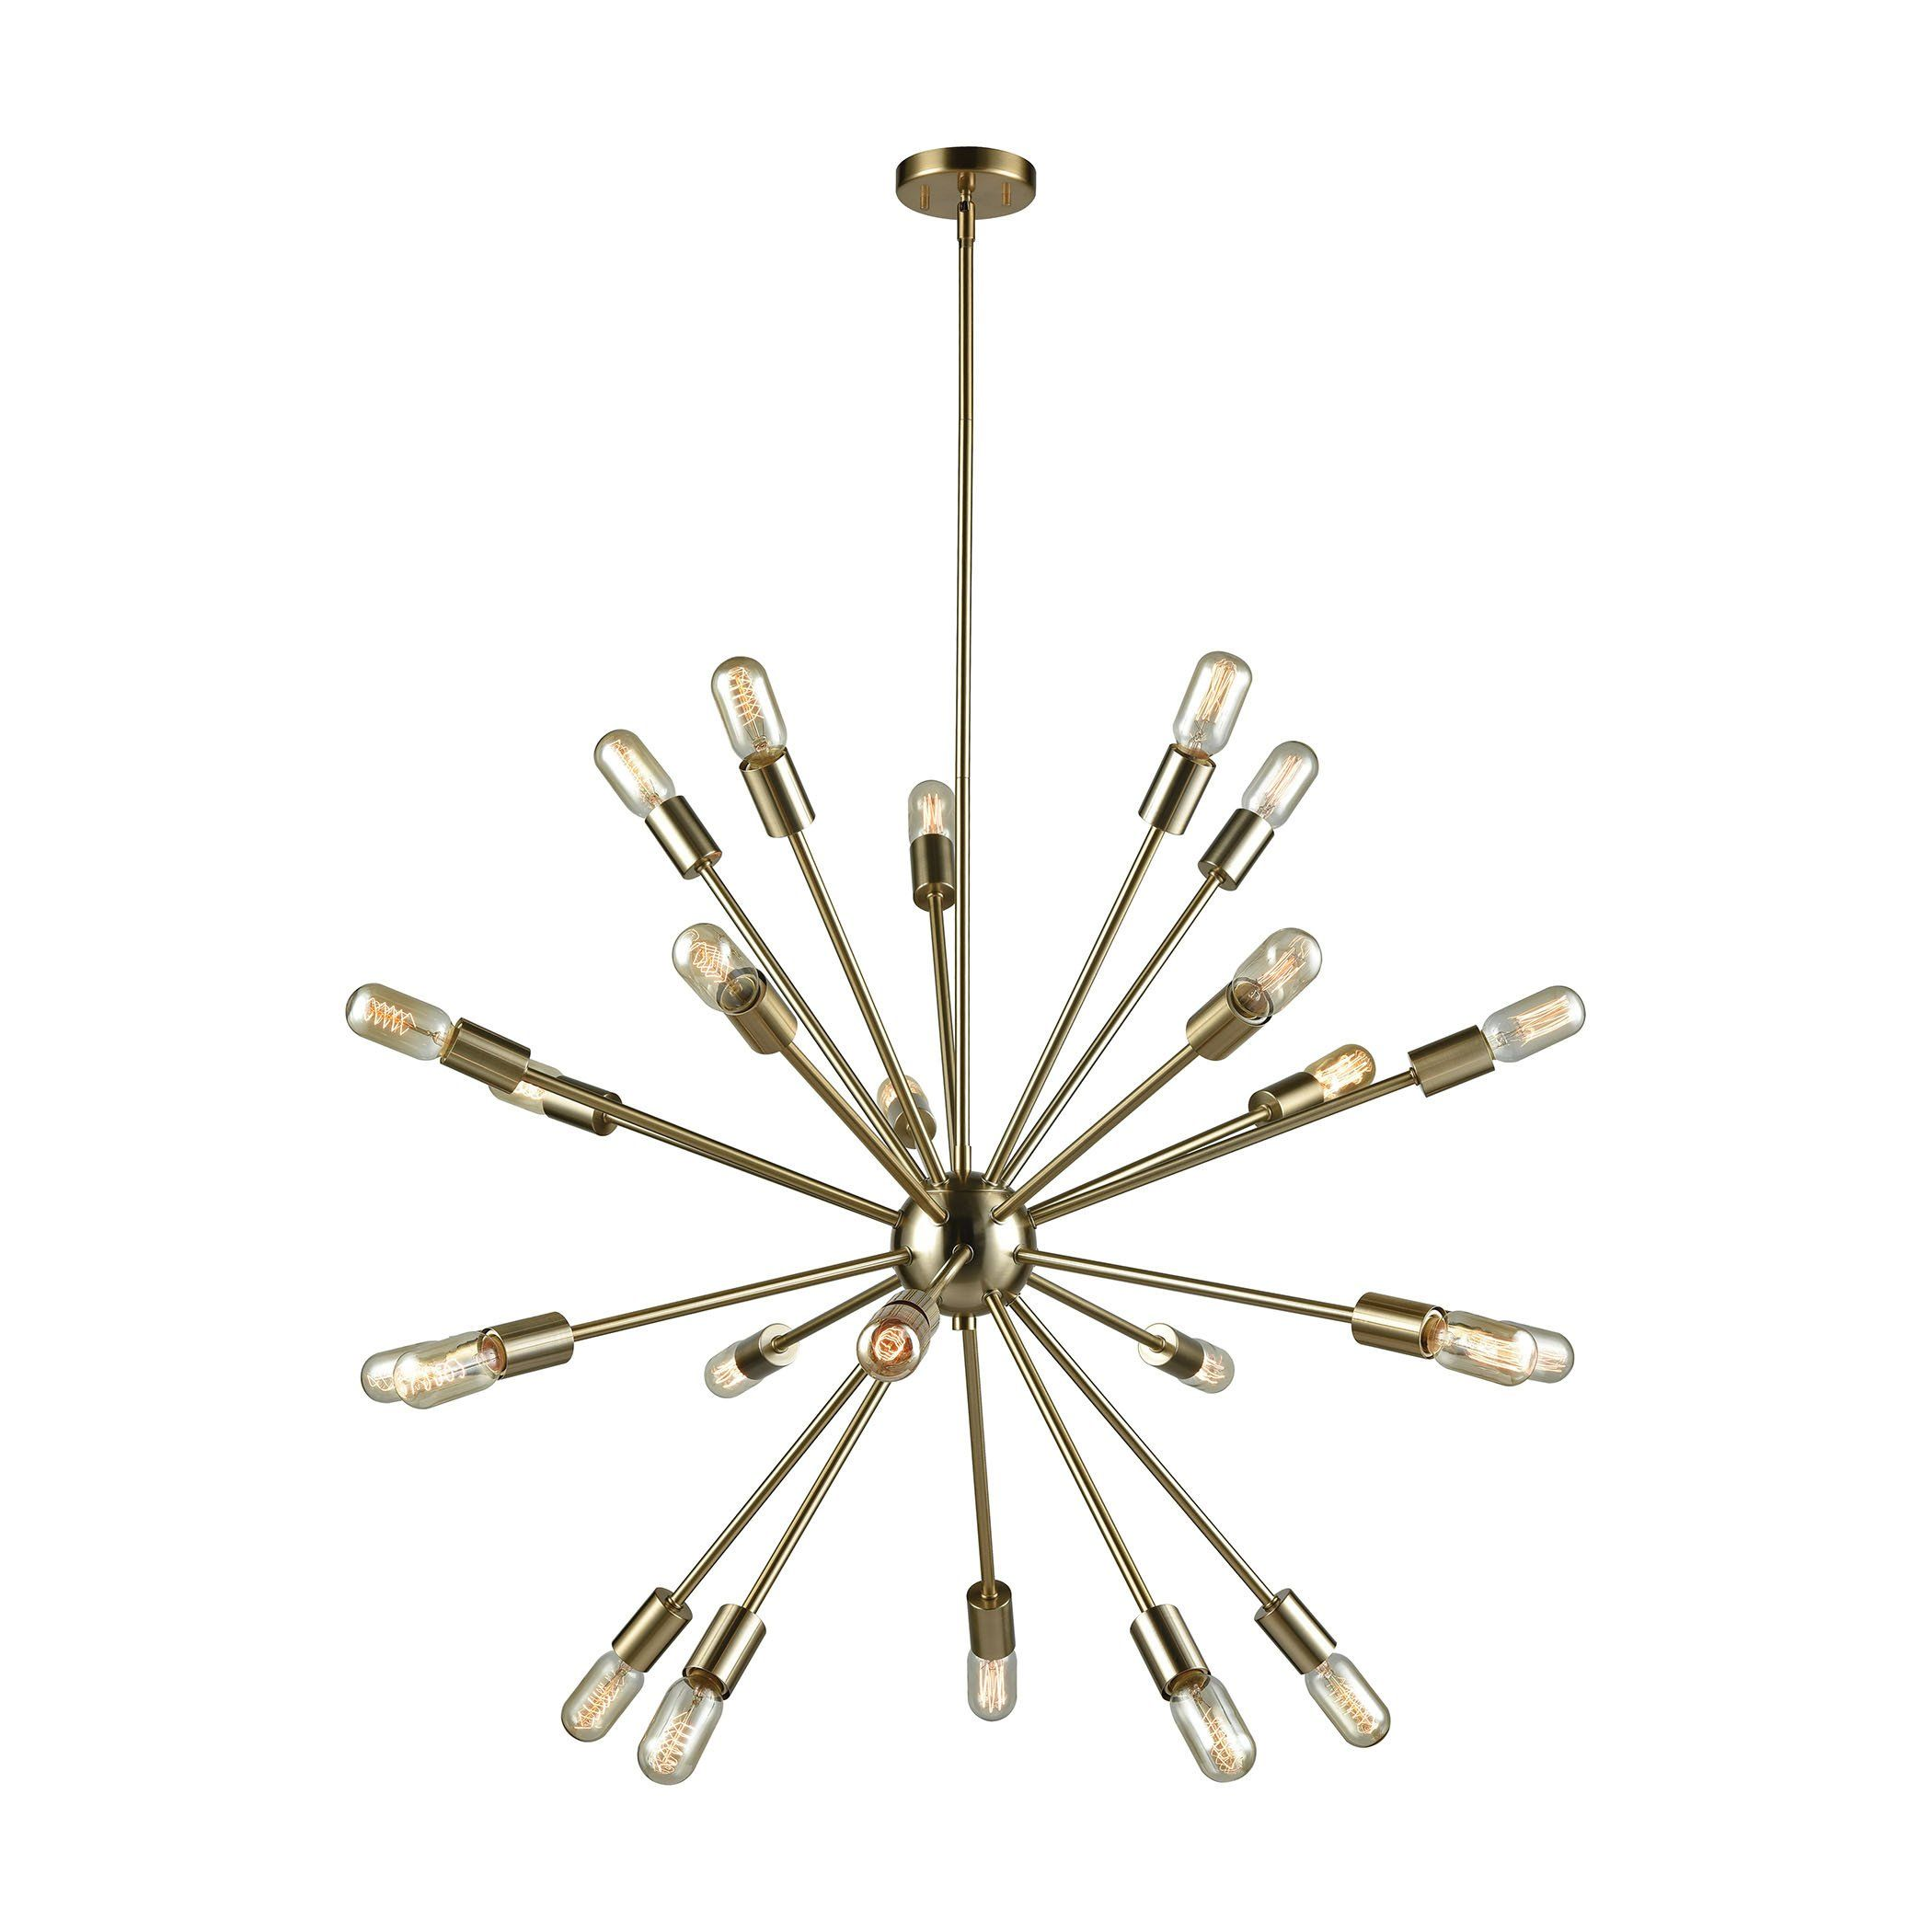 Delphine 24 light chandelier in satin brass 4624524 products delphine 24 light chandelier in satin brass 4624524 arubaitofo Image collections